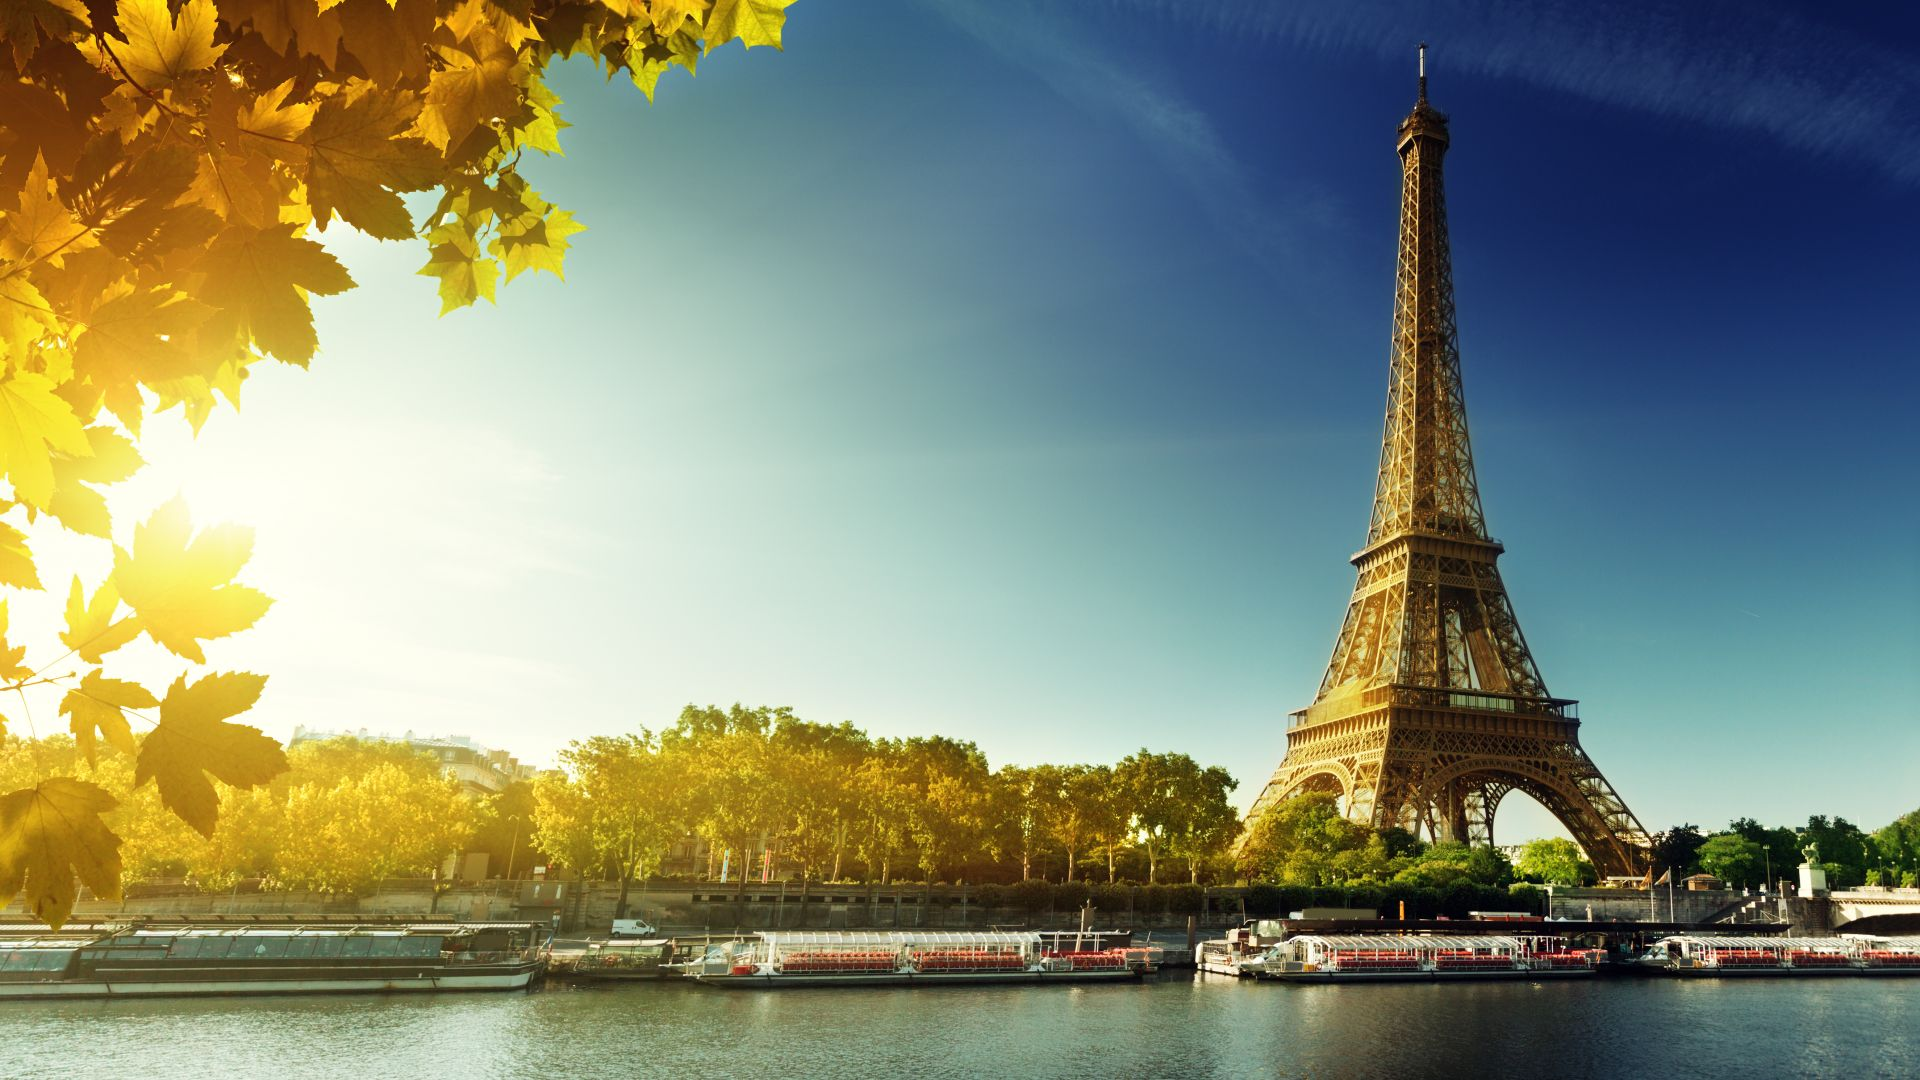 Paris, Eiffel Tower, France, autumn, travel, tourism (horizontal)